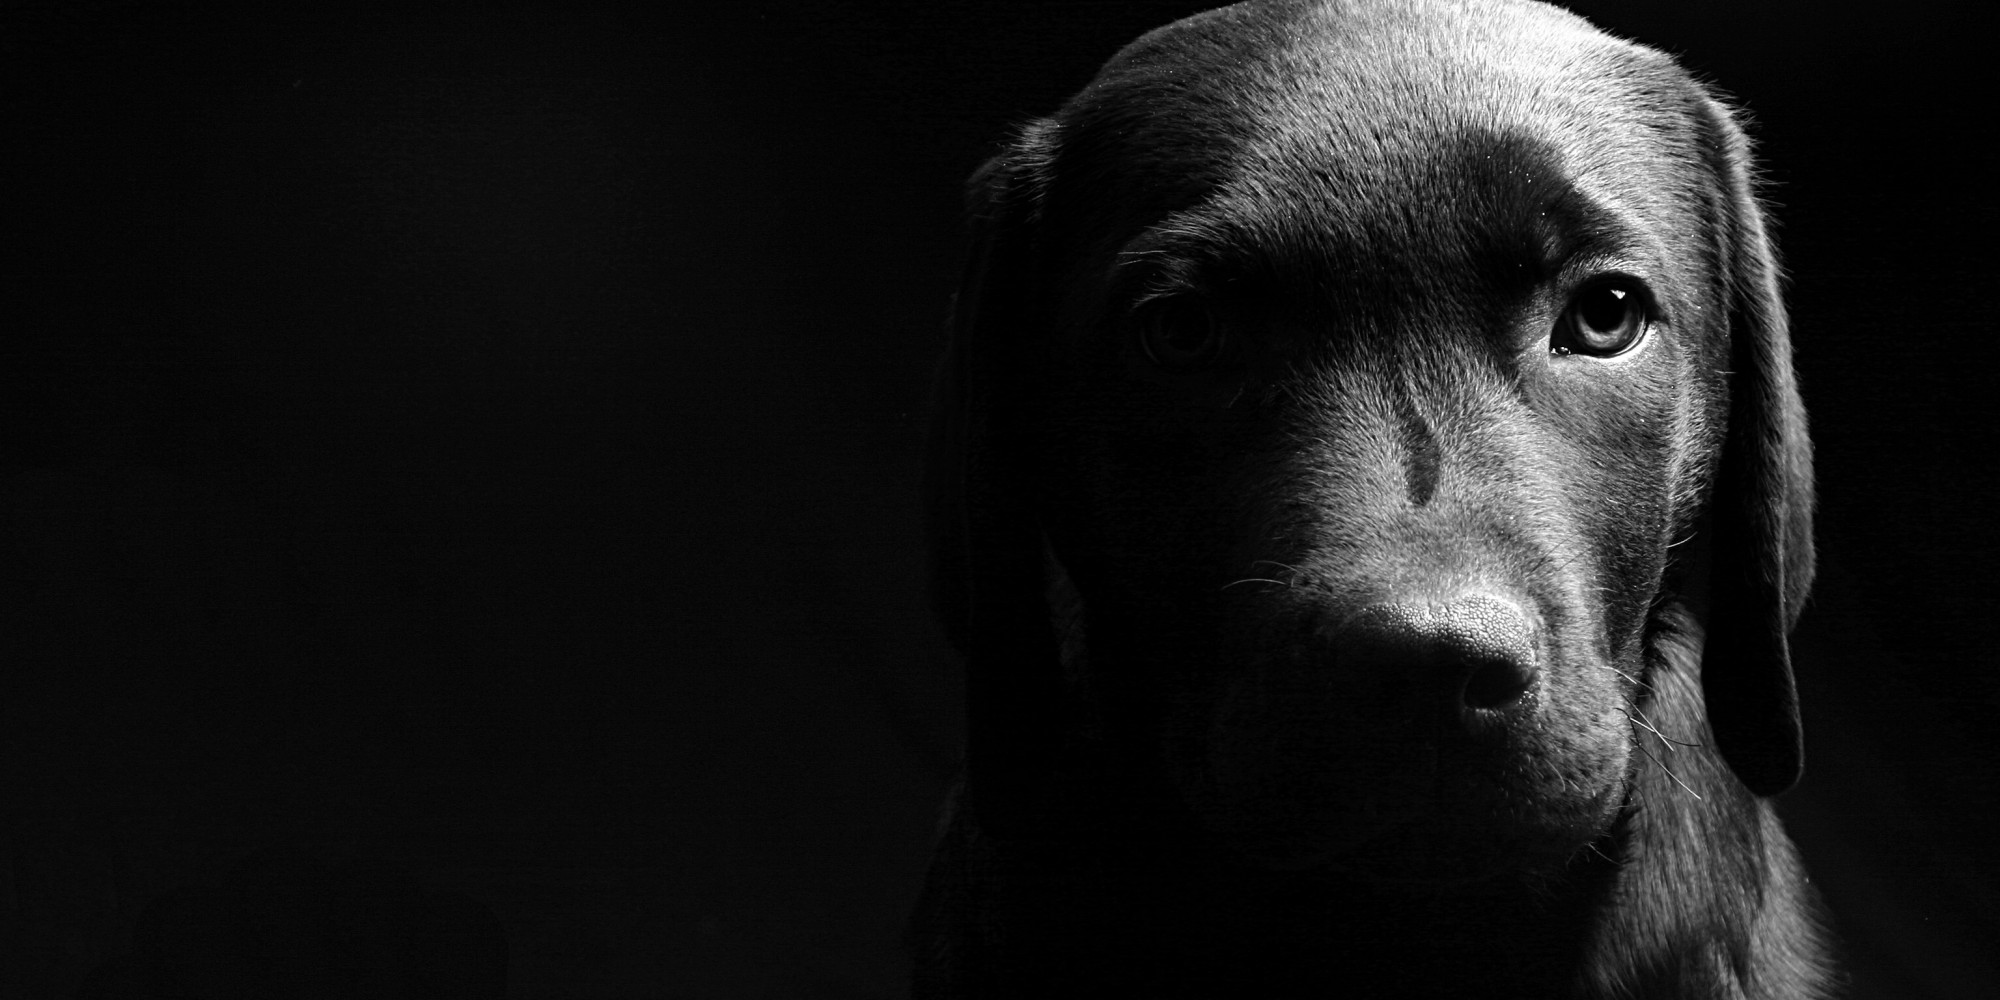 2000x1000 - Wallpaper Dogs Black and White 33